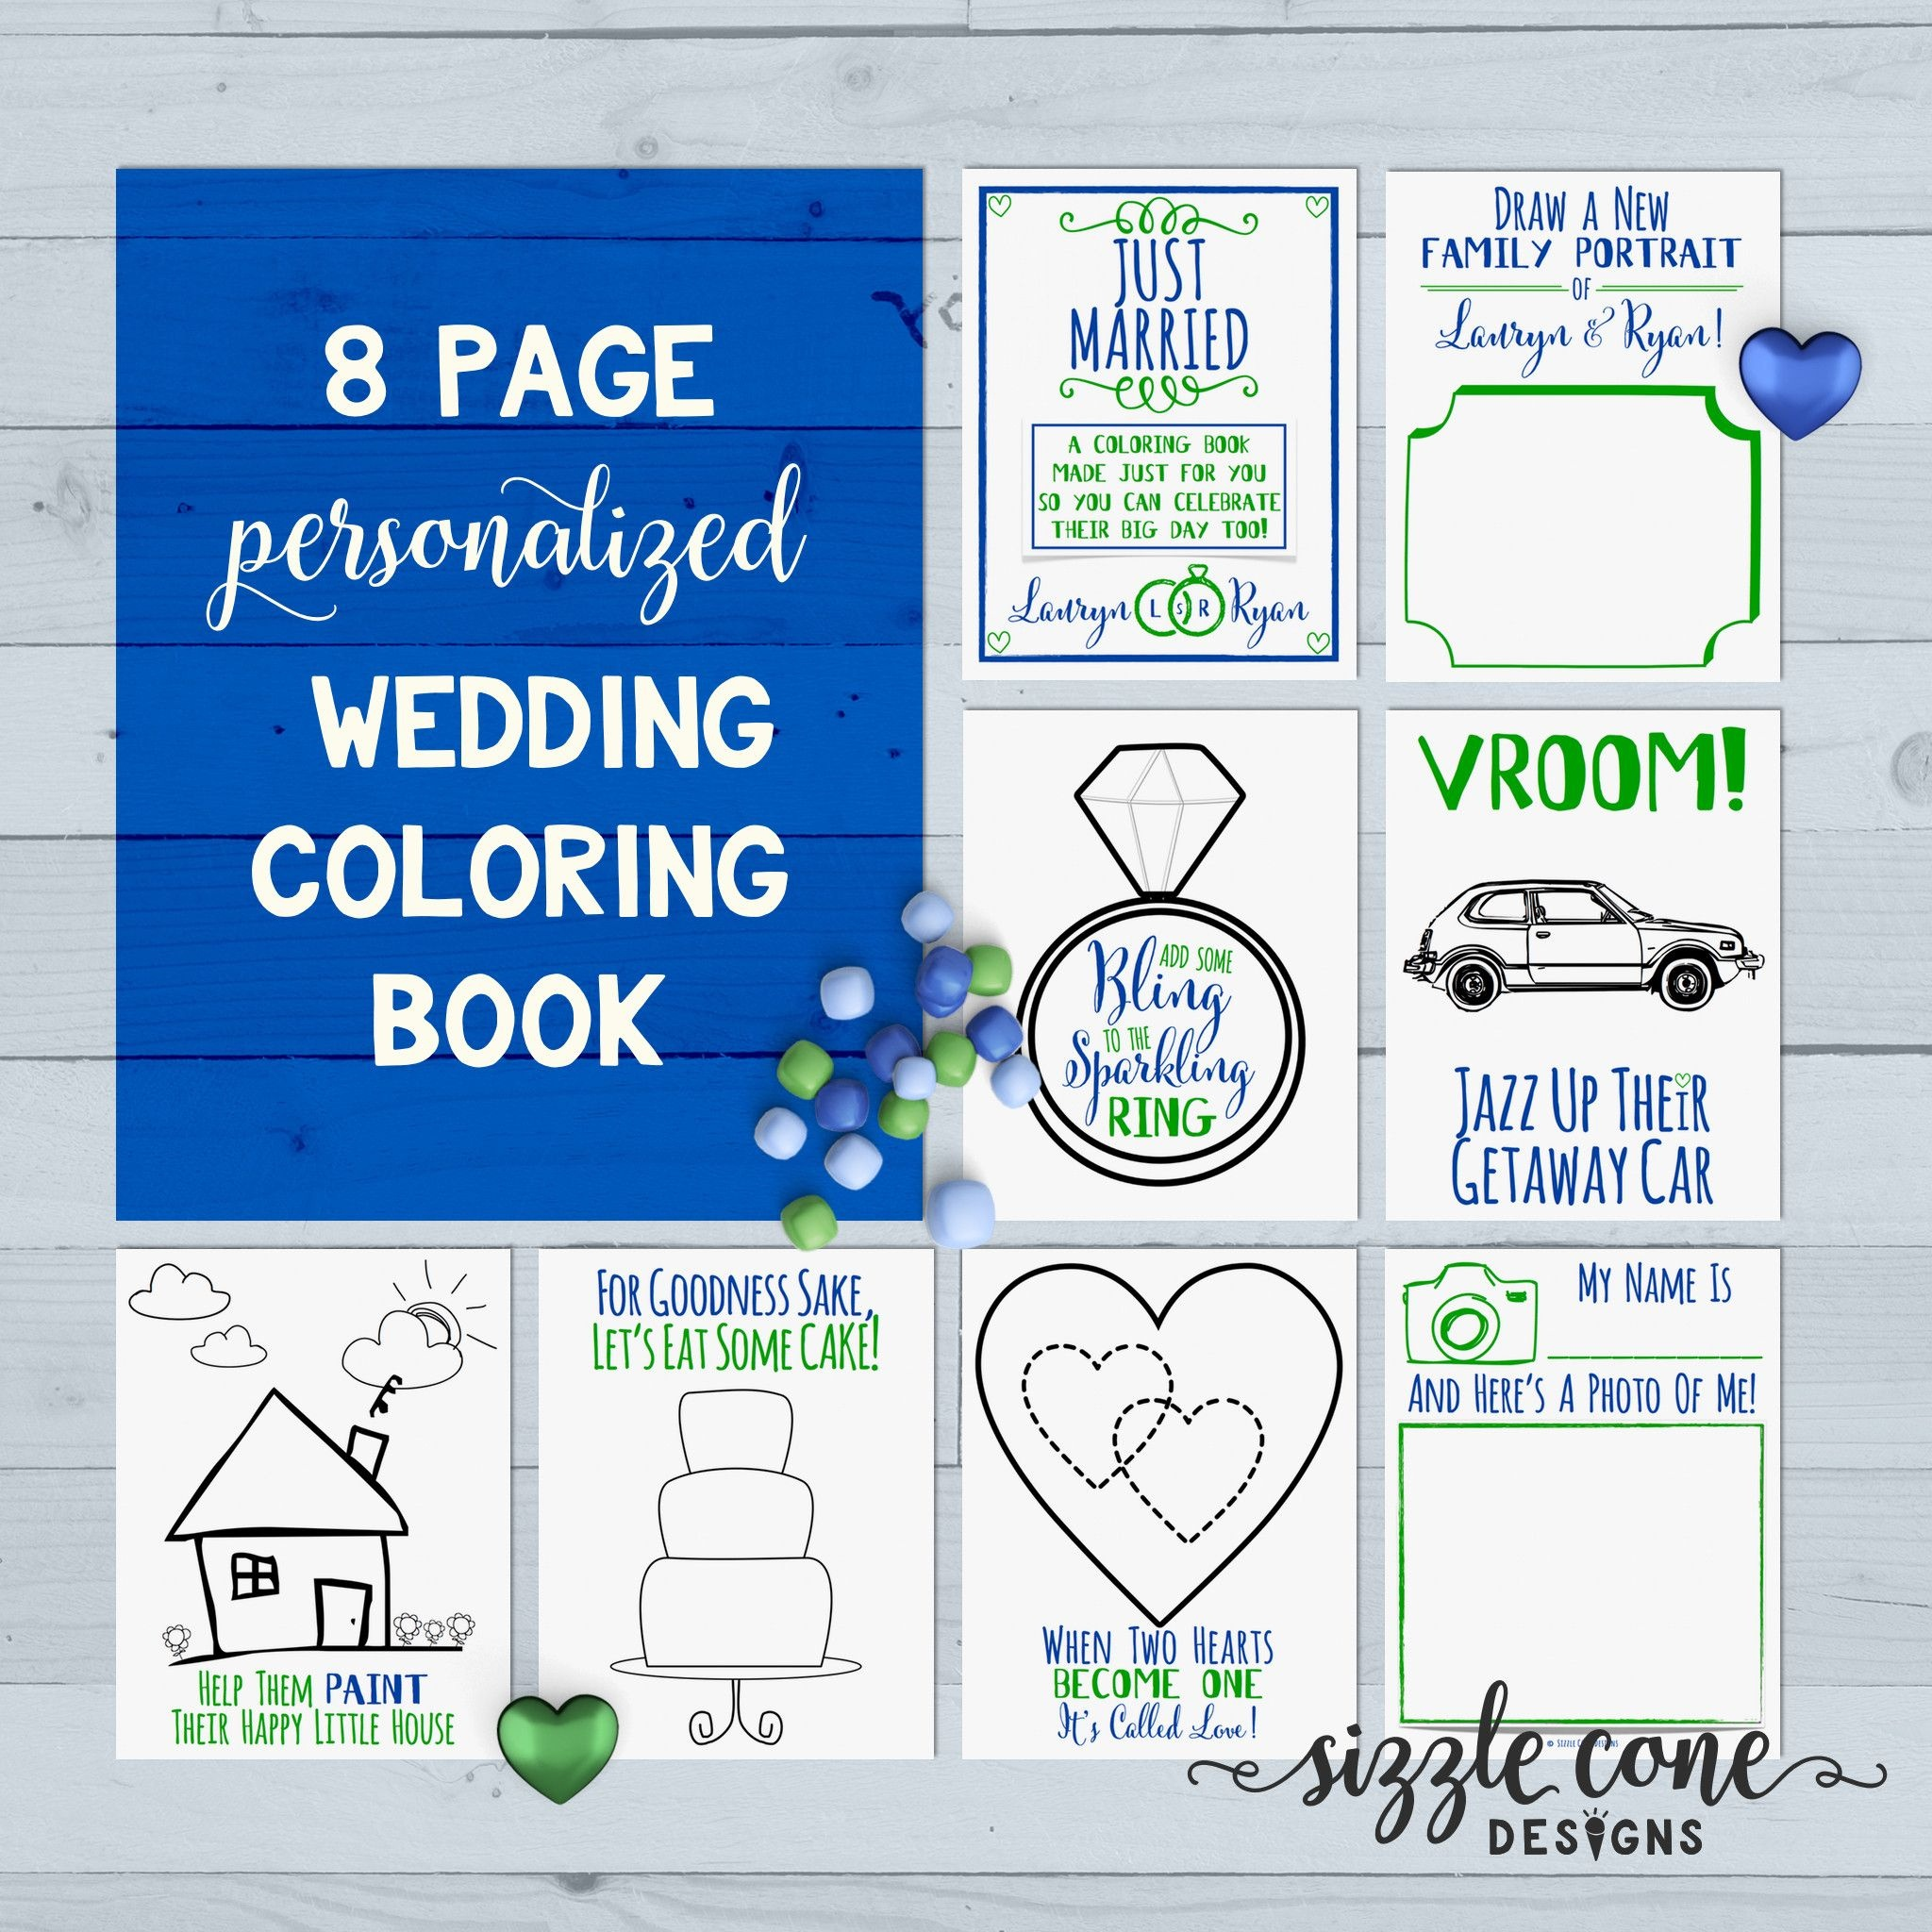 Custom Wedding Coloring Book Pages Printable In 2019 | Member Board - Free Printable Personalized Children's Books